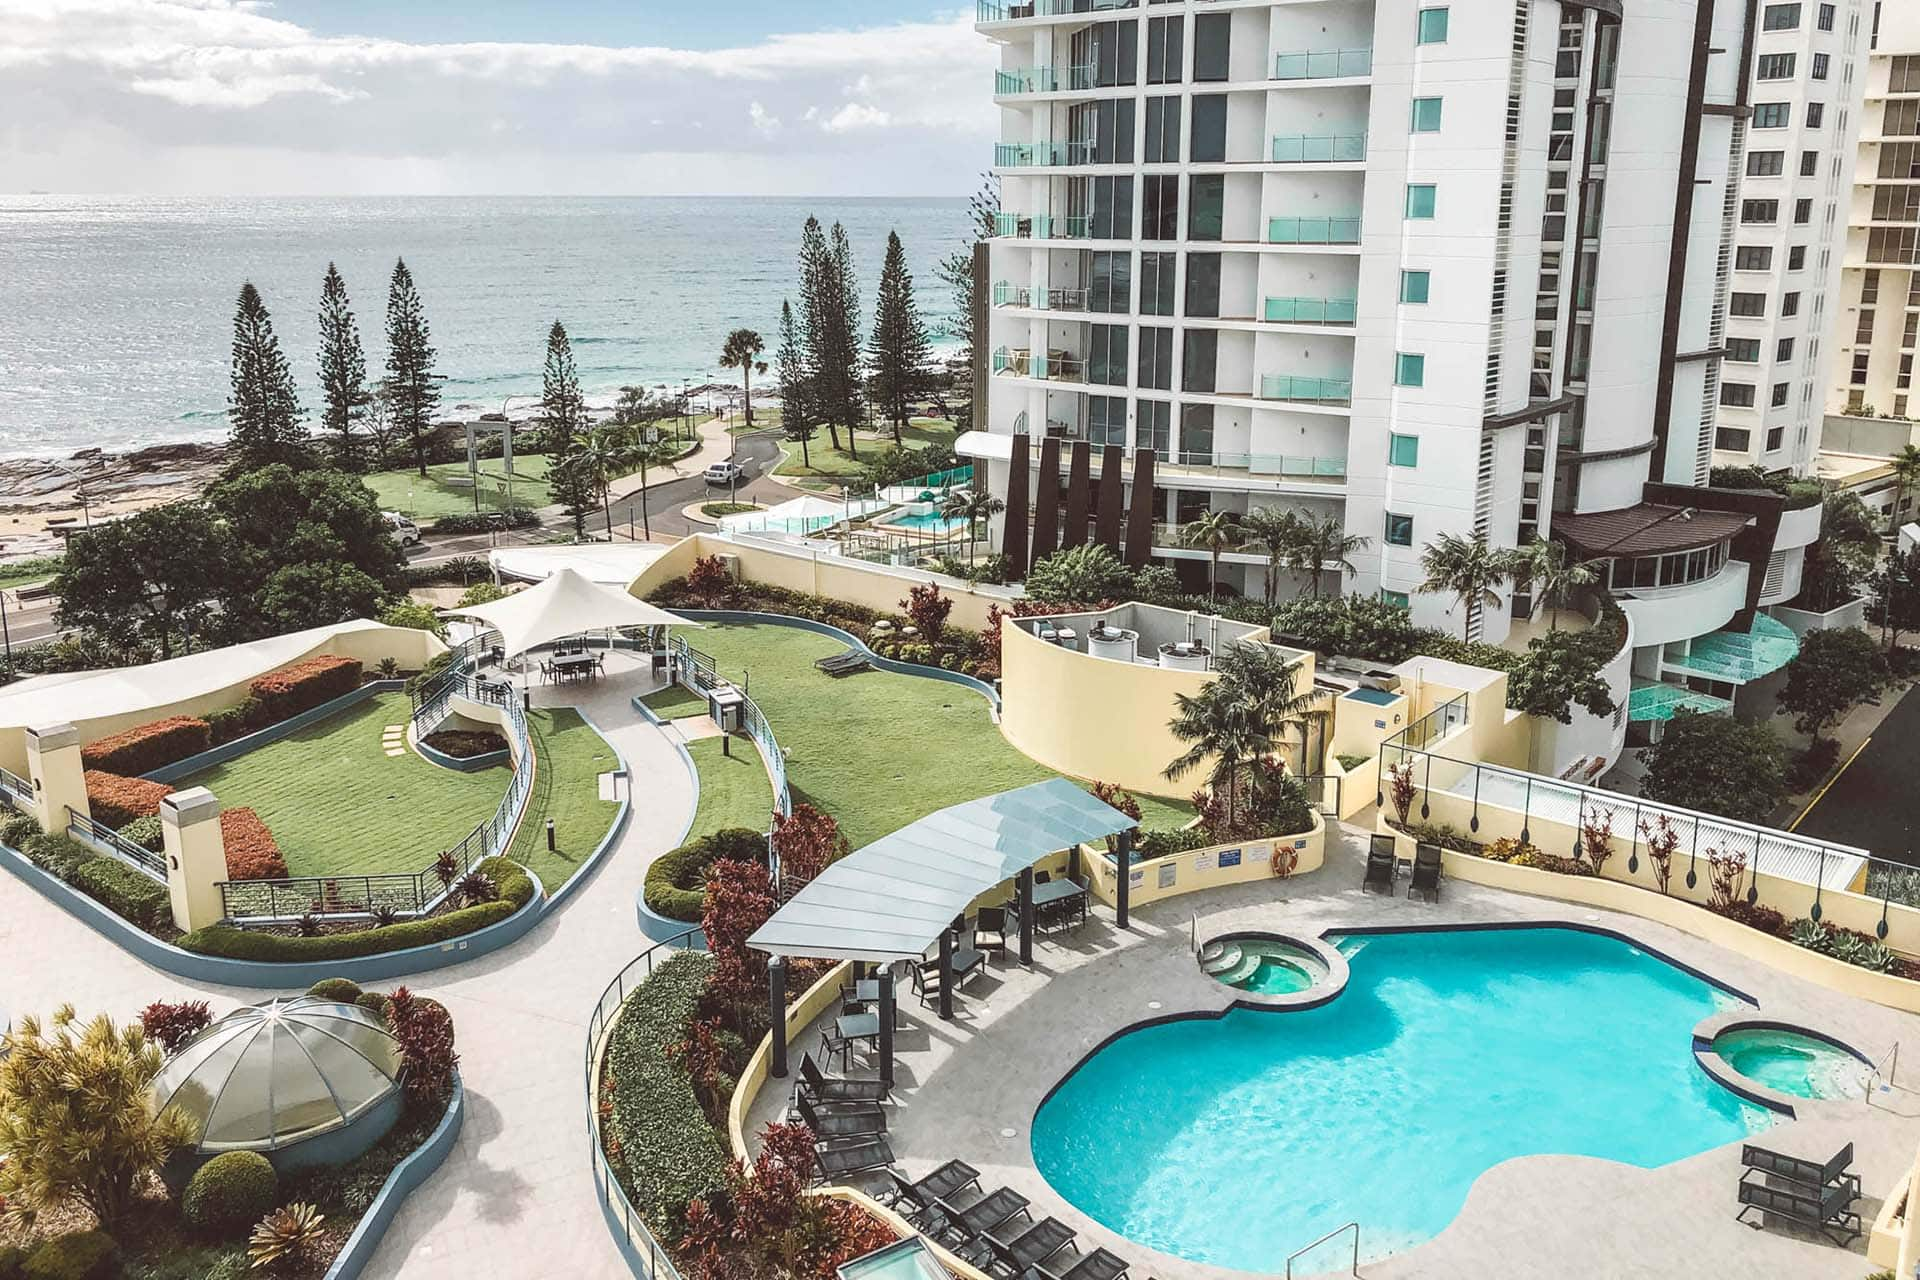 Mantra Mooloolaba Beach Review